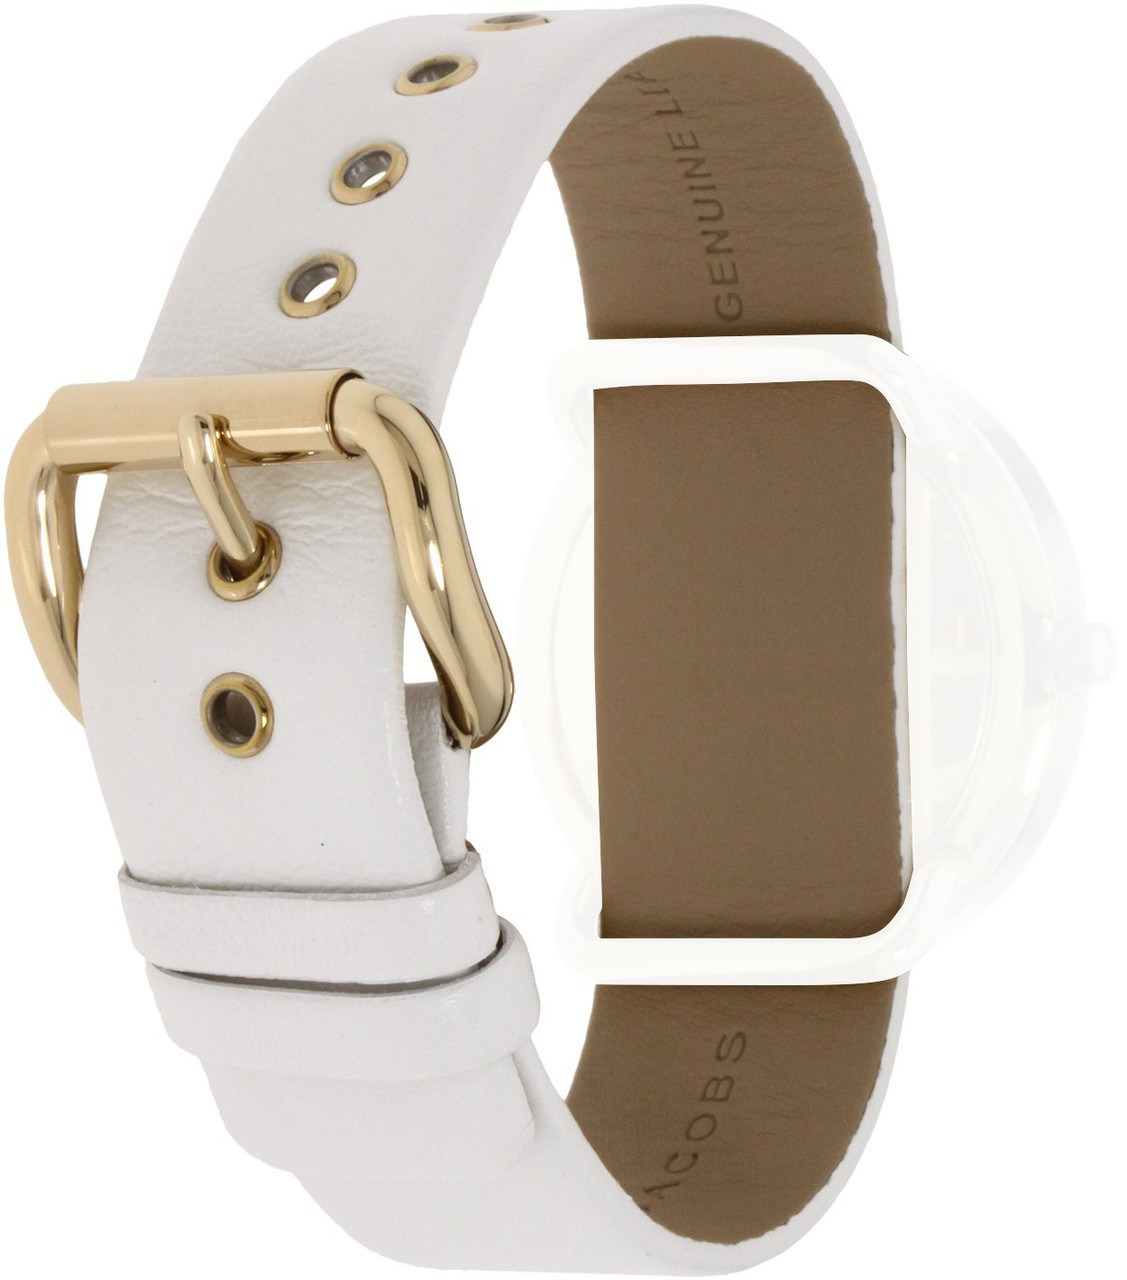 ecfec0911130b Marc Jacobs Replacement Watch Strap White Leather 20mm For MBM1150